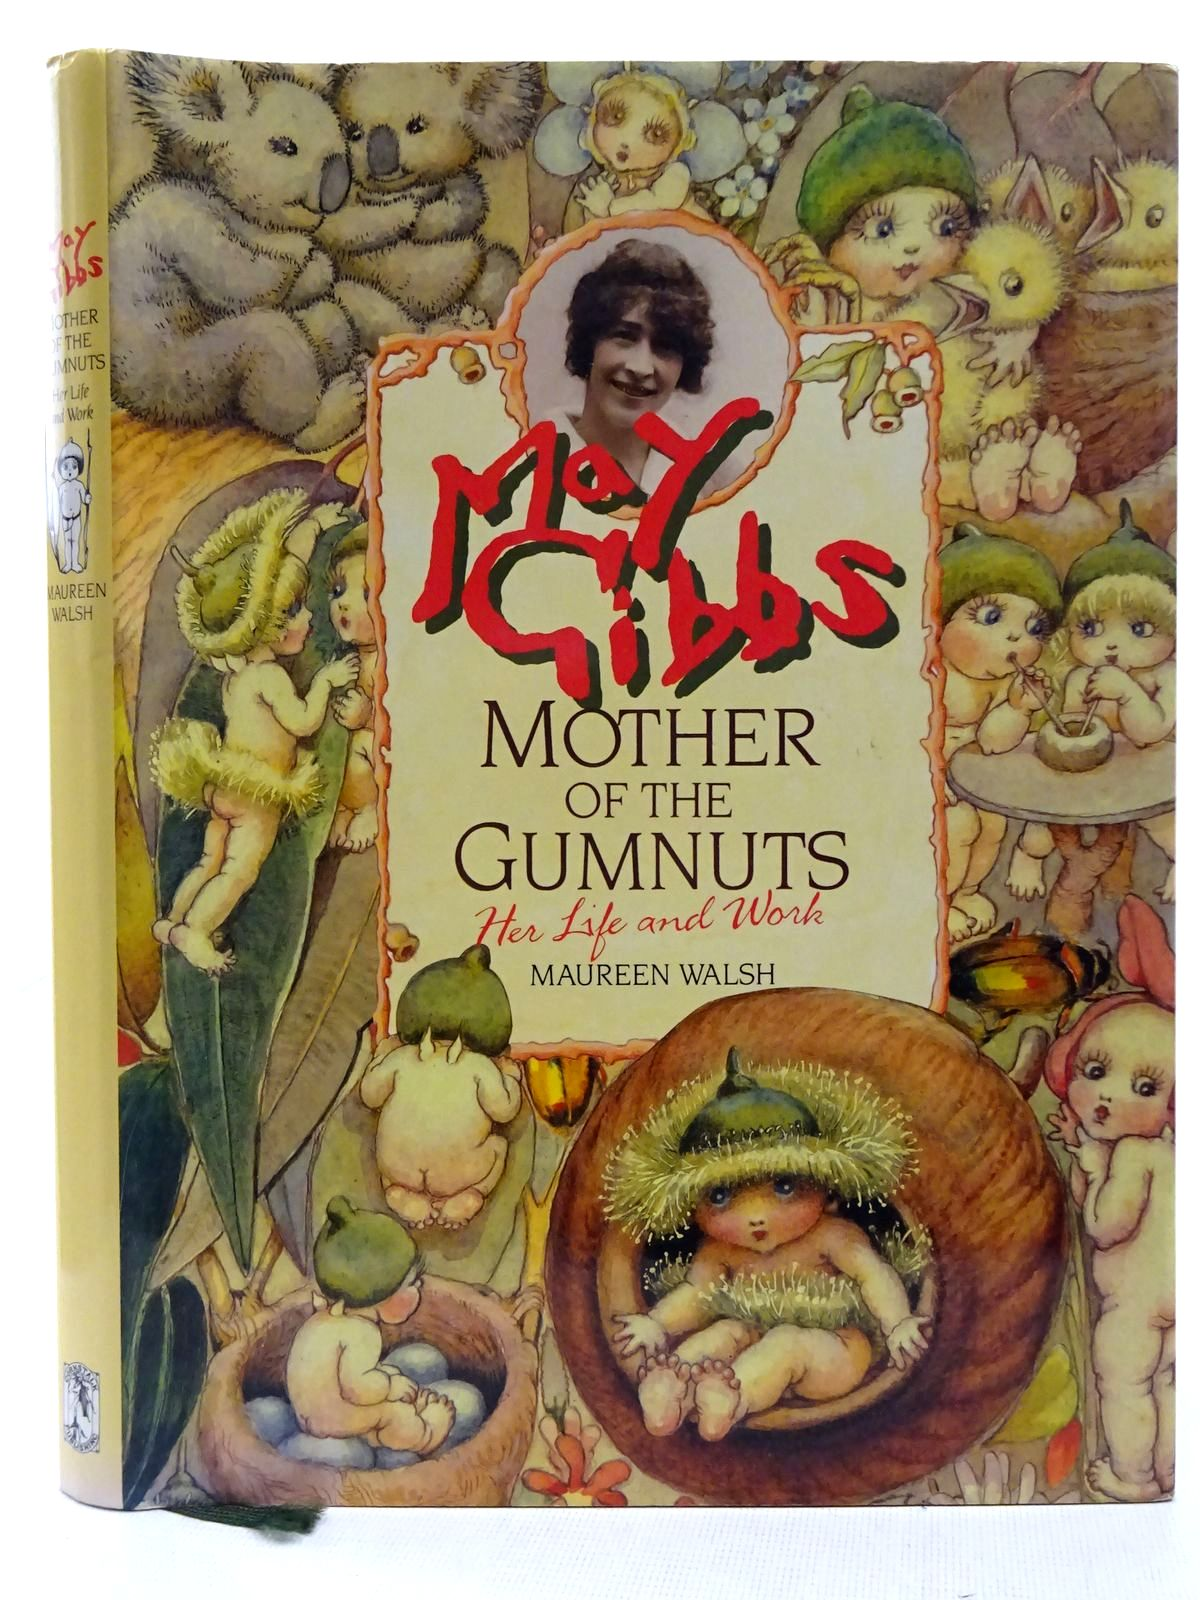 Photo of MAY GIBBS MOTHER OF THE GUMNUTS - HER LIFE AND WORK written by Walsh, Maureen illustrated by Gibbs, May published by Cornstalk Publishing (STOCK CODE: 2128520)  for sale by Stella & Rose's Books